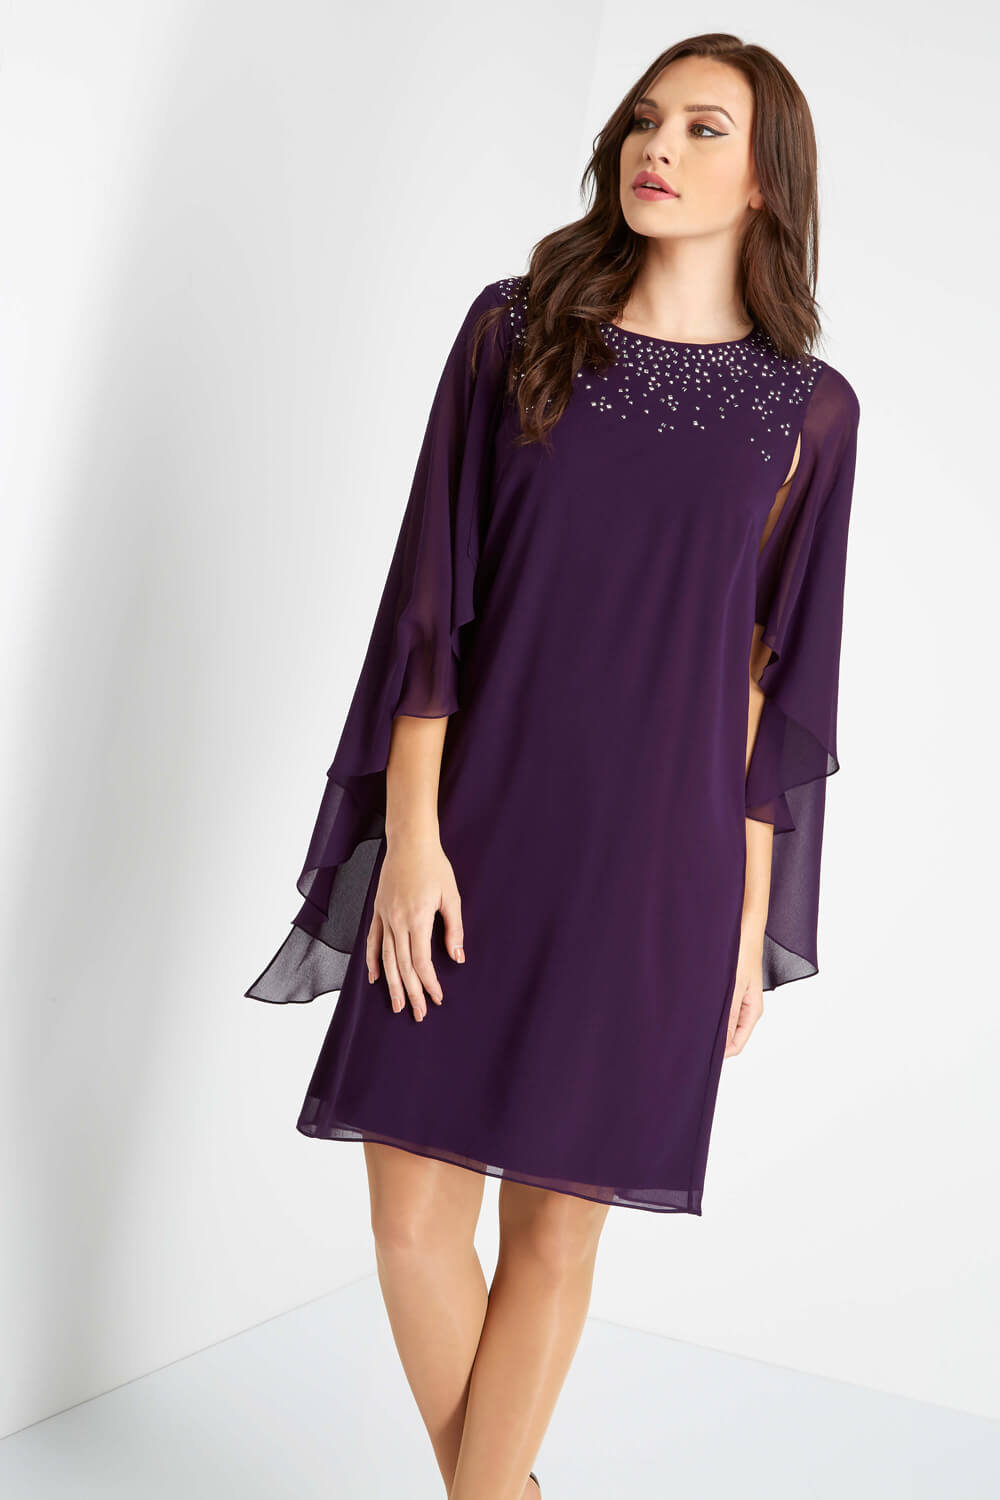 Roman-Originals-Ladies-Embellished-Chiffon-Cape-Dress-Purple thumbnail 7